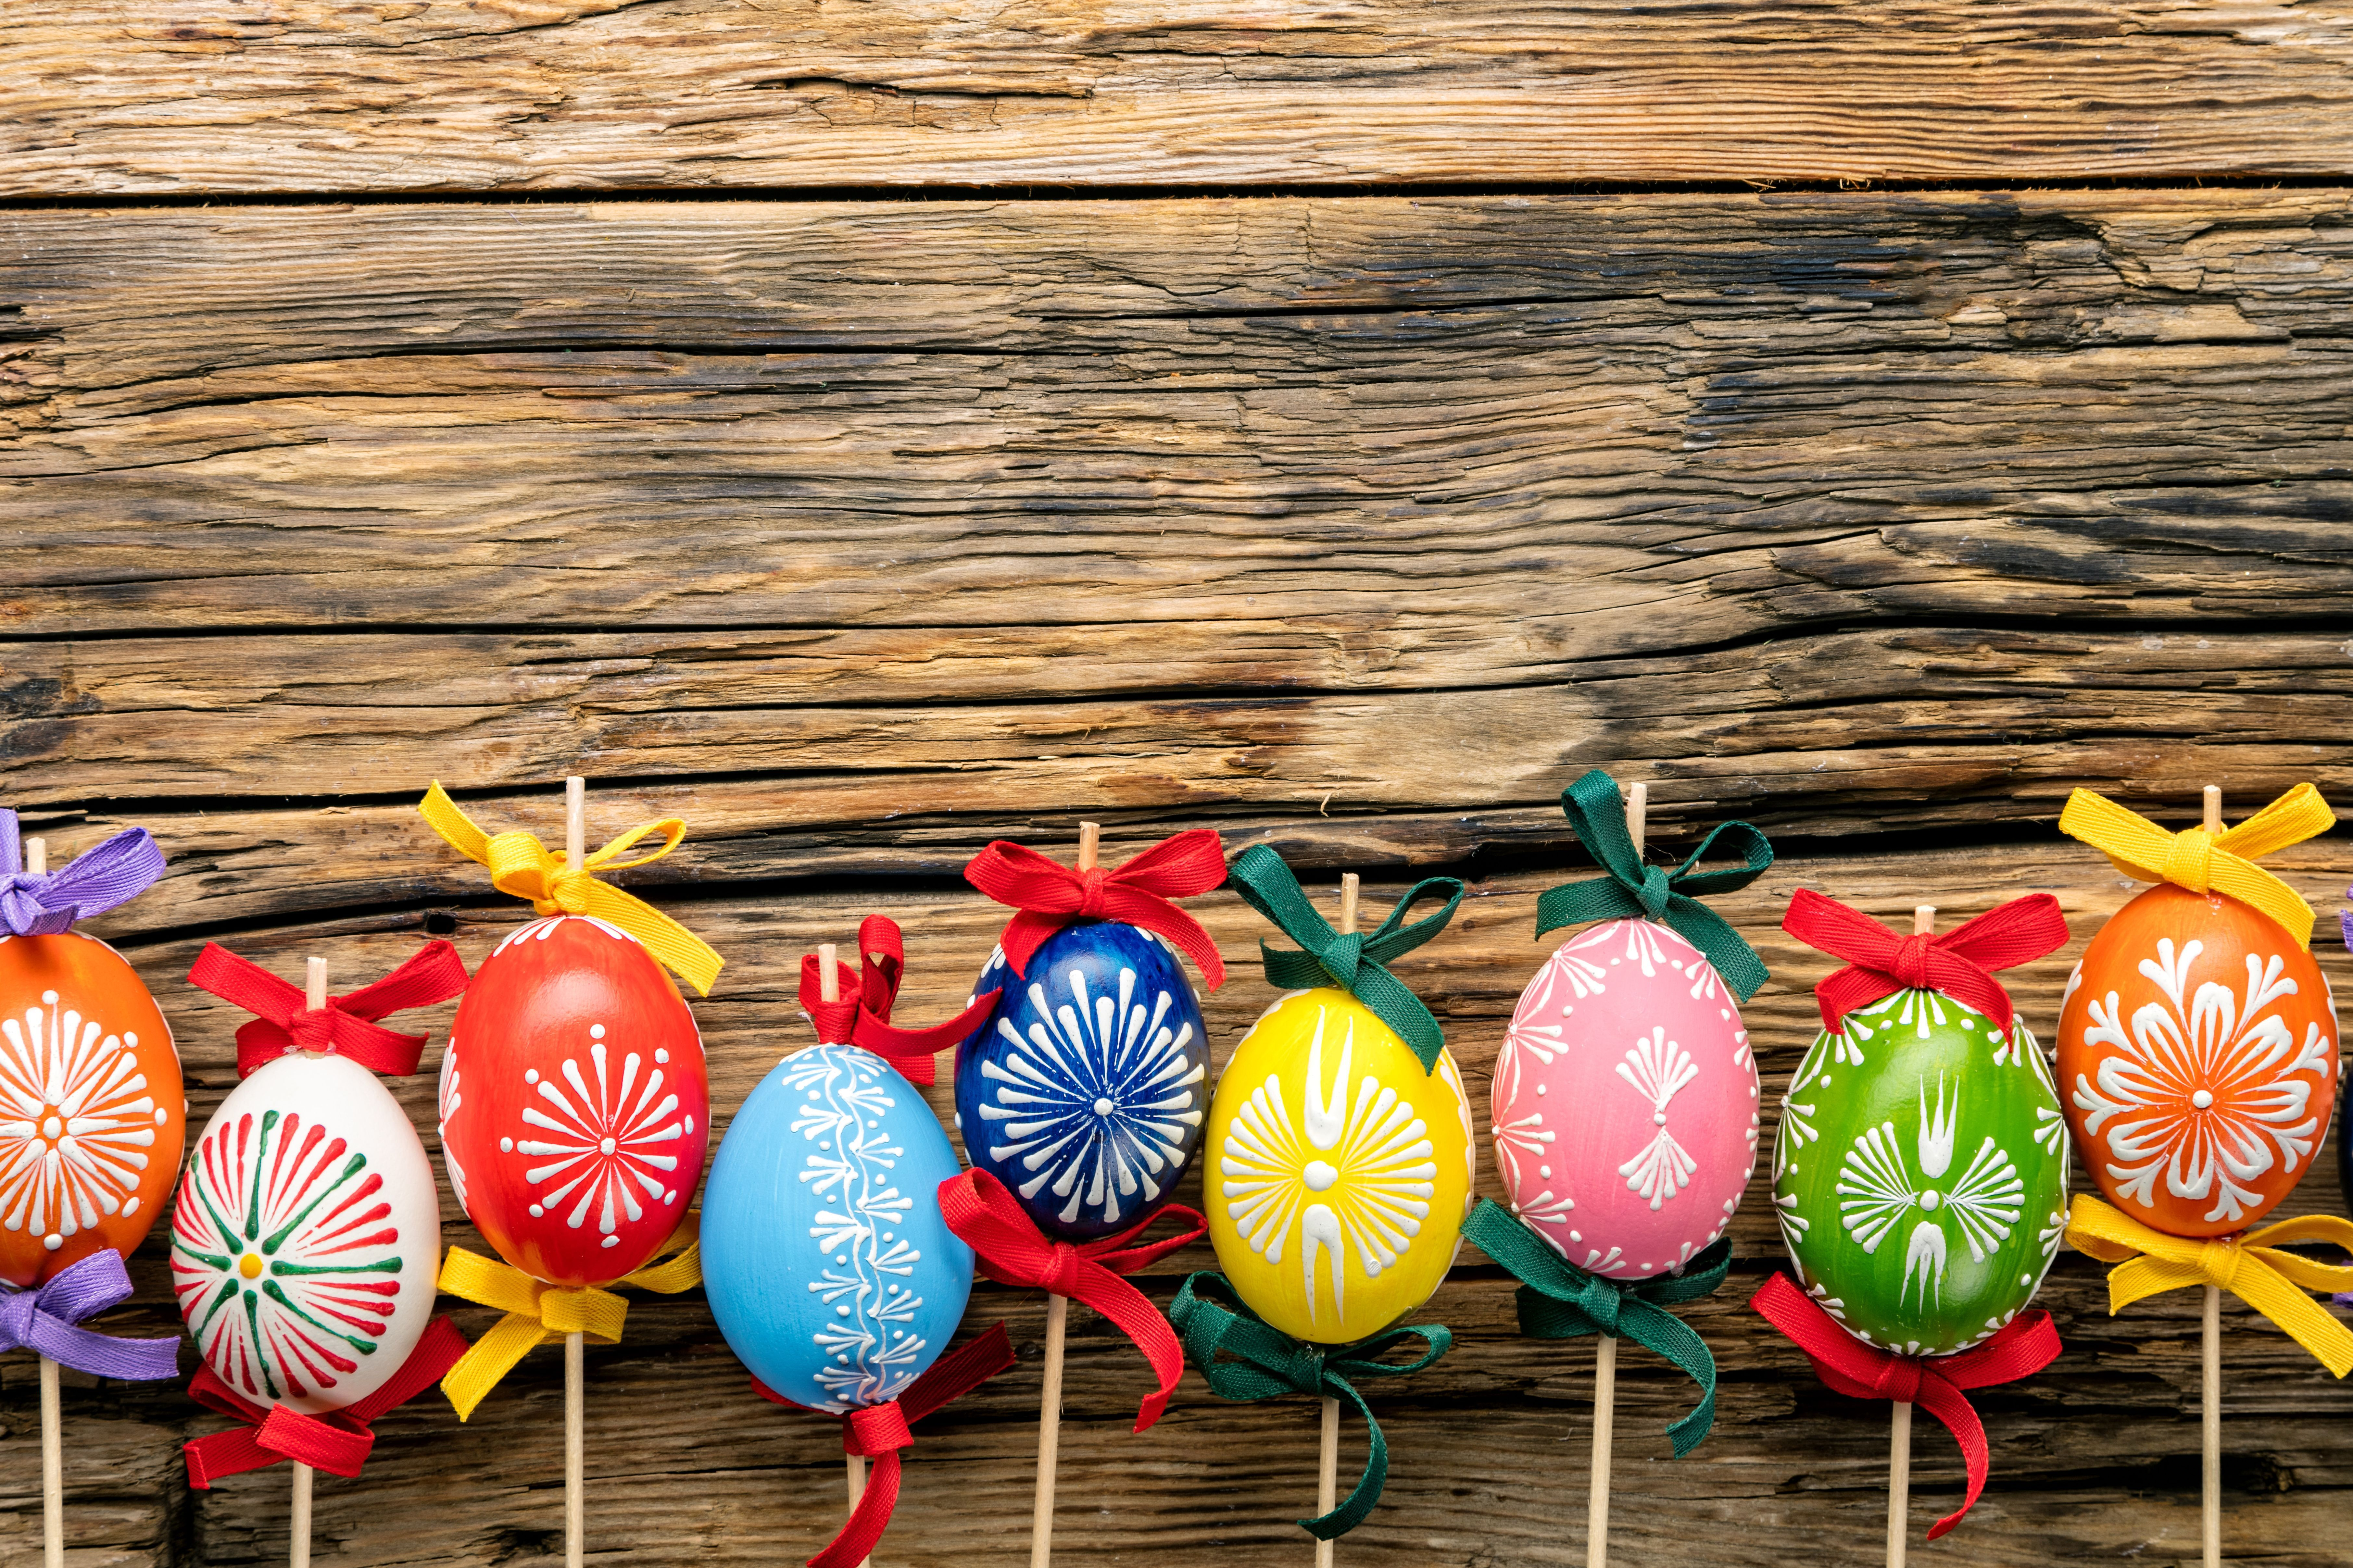 Pin By Wallpaper4rest On Cars Easter Wallpaper Easter Eggs Easter